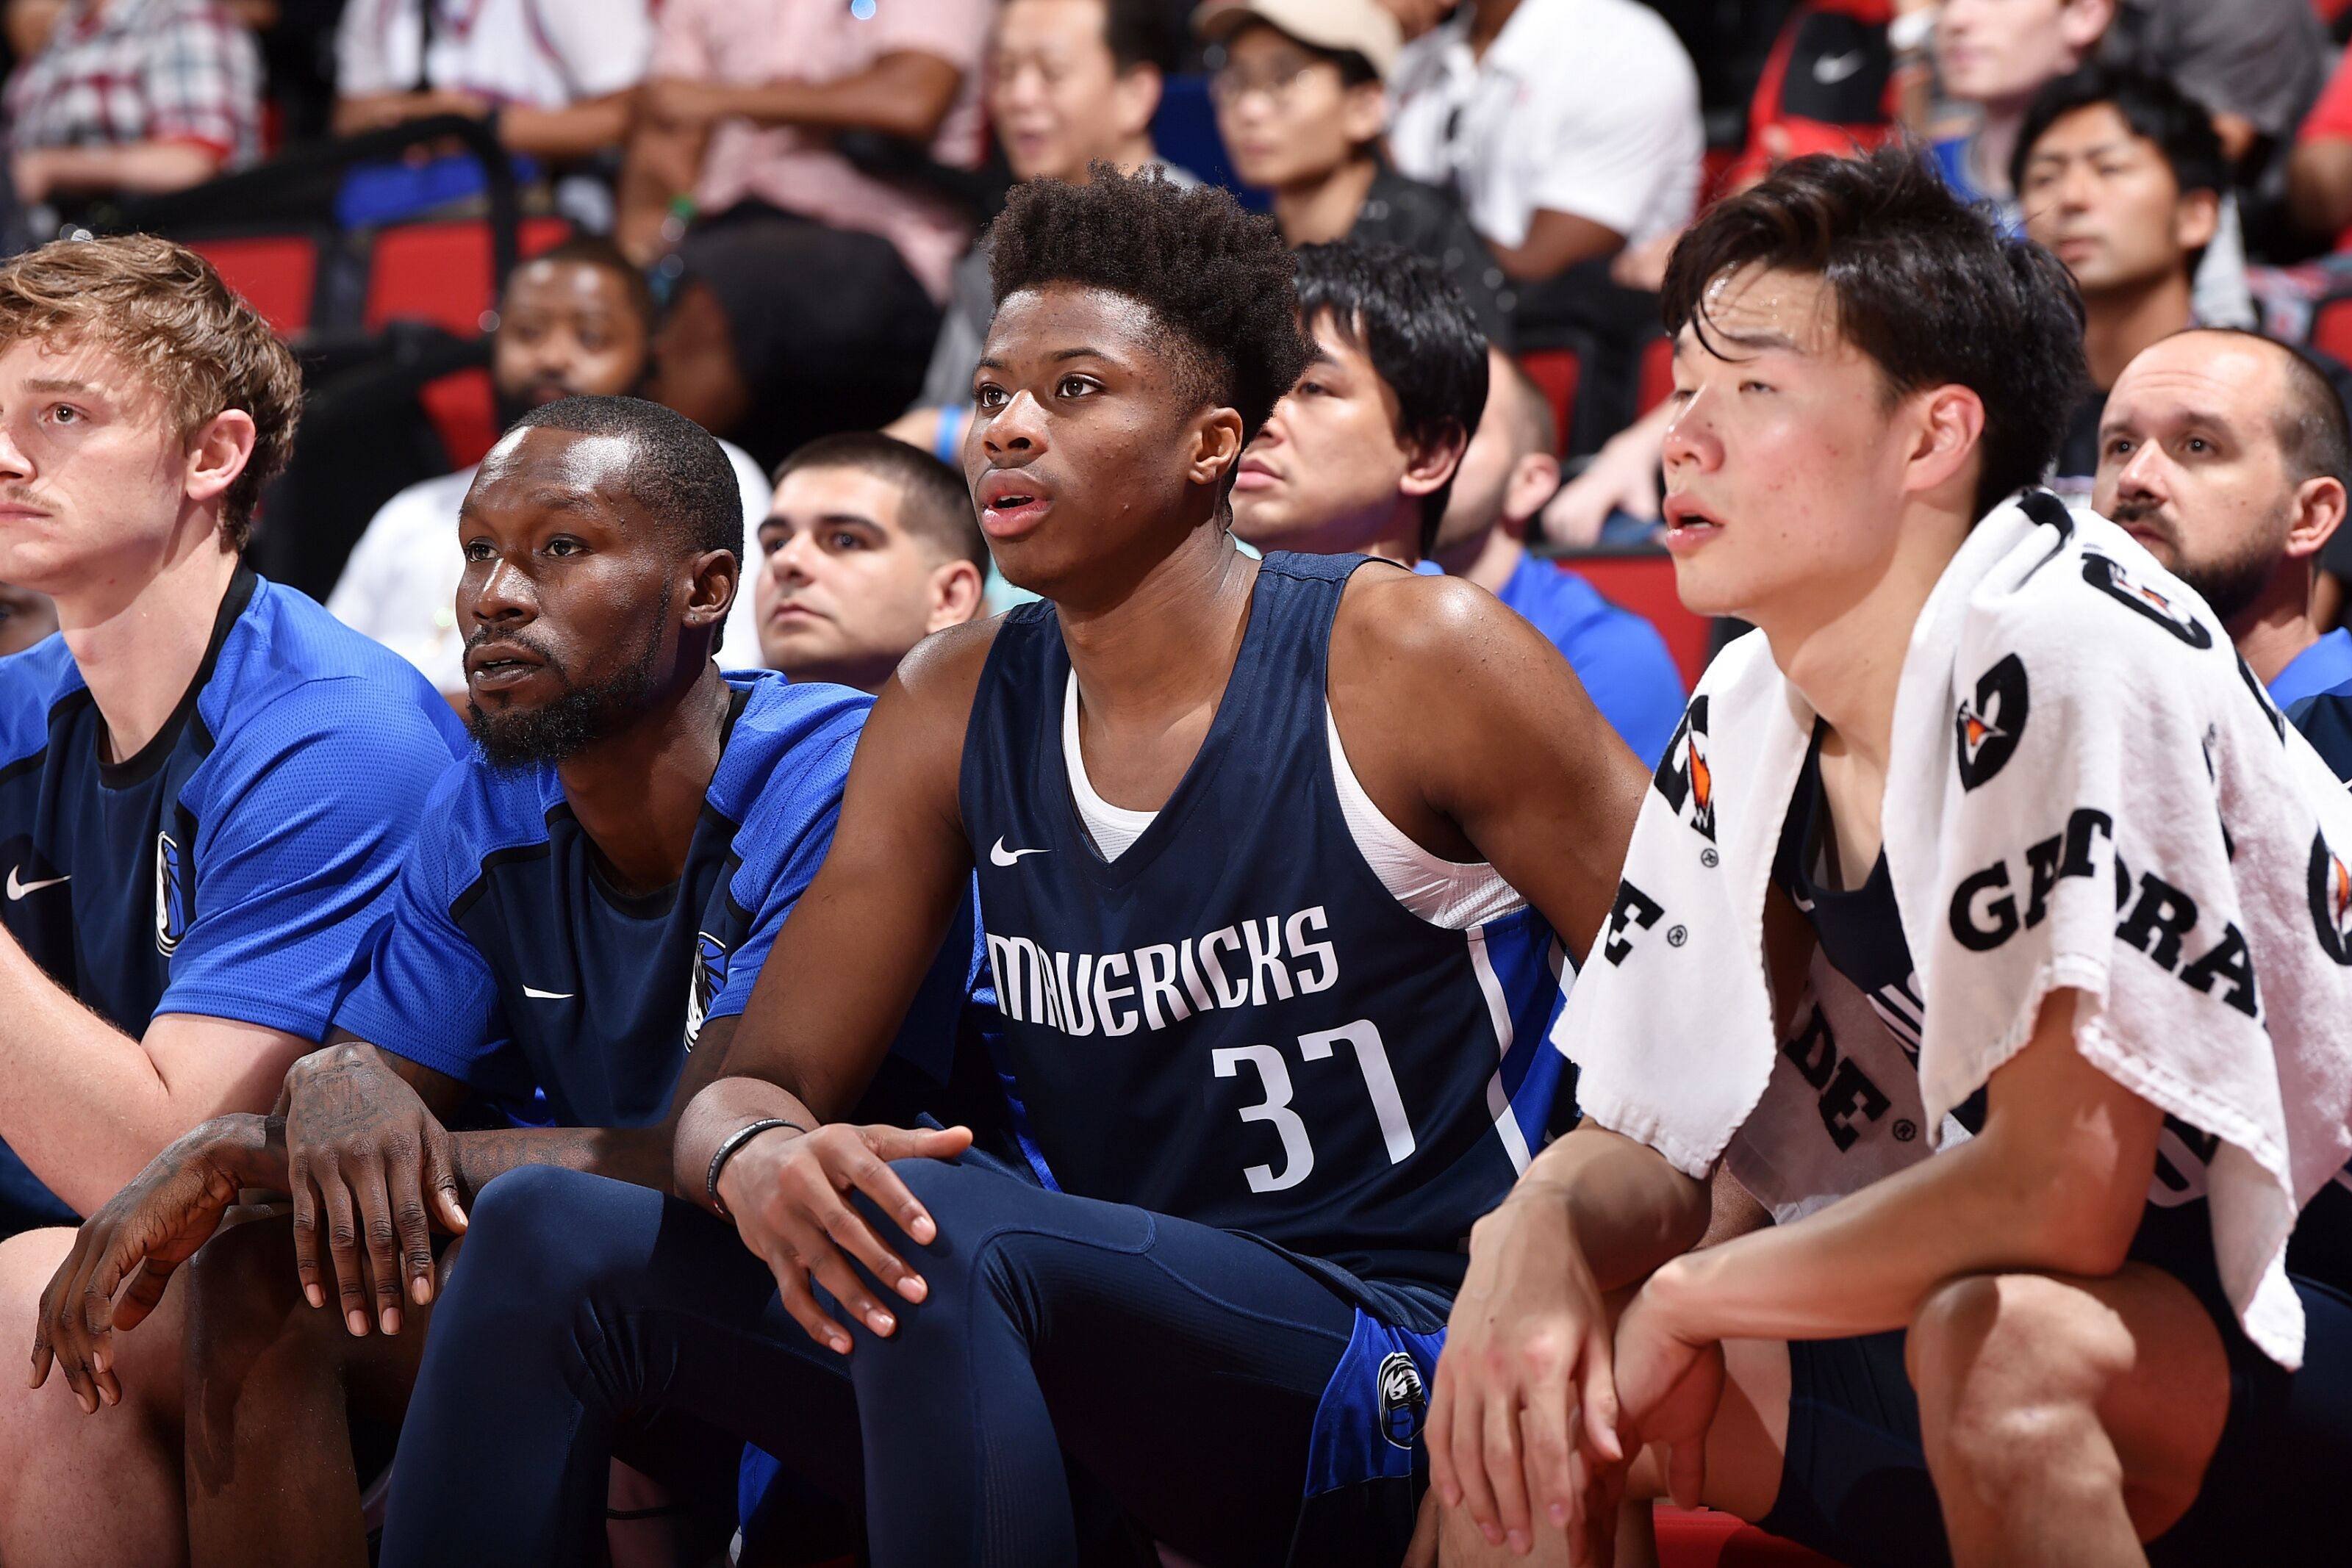 Toronto Raptors signing of Kostas Antetokounmpo might have larger implications